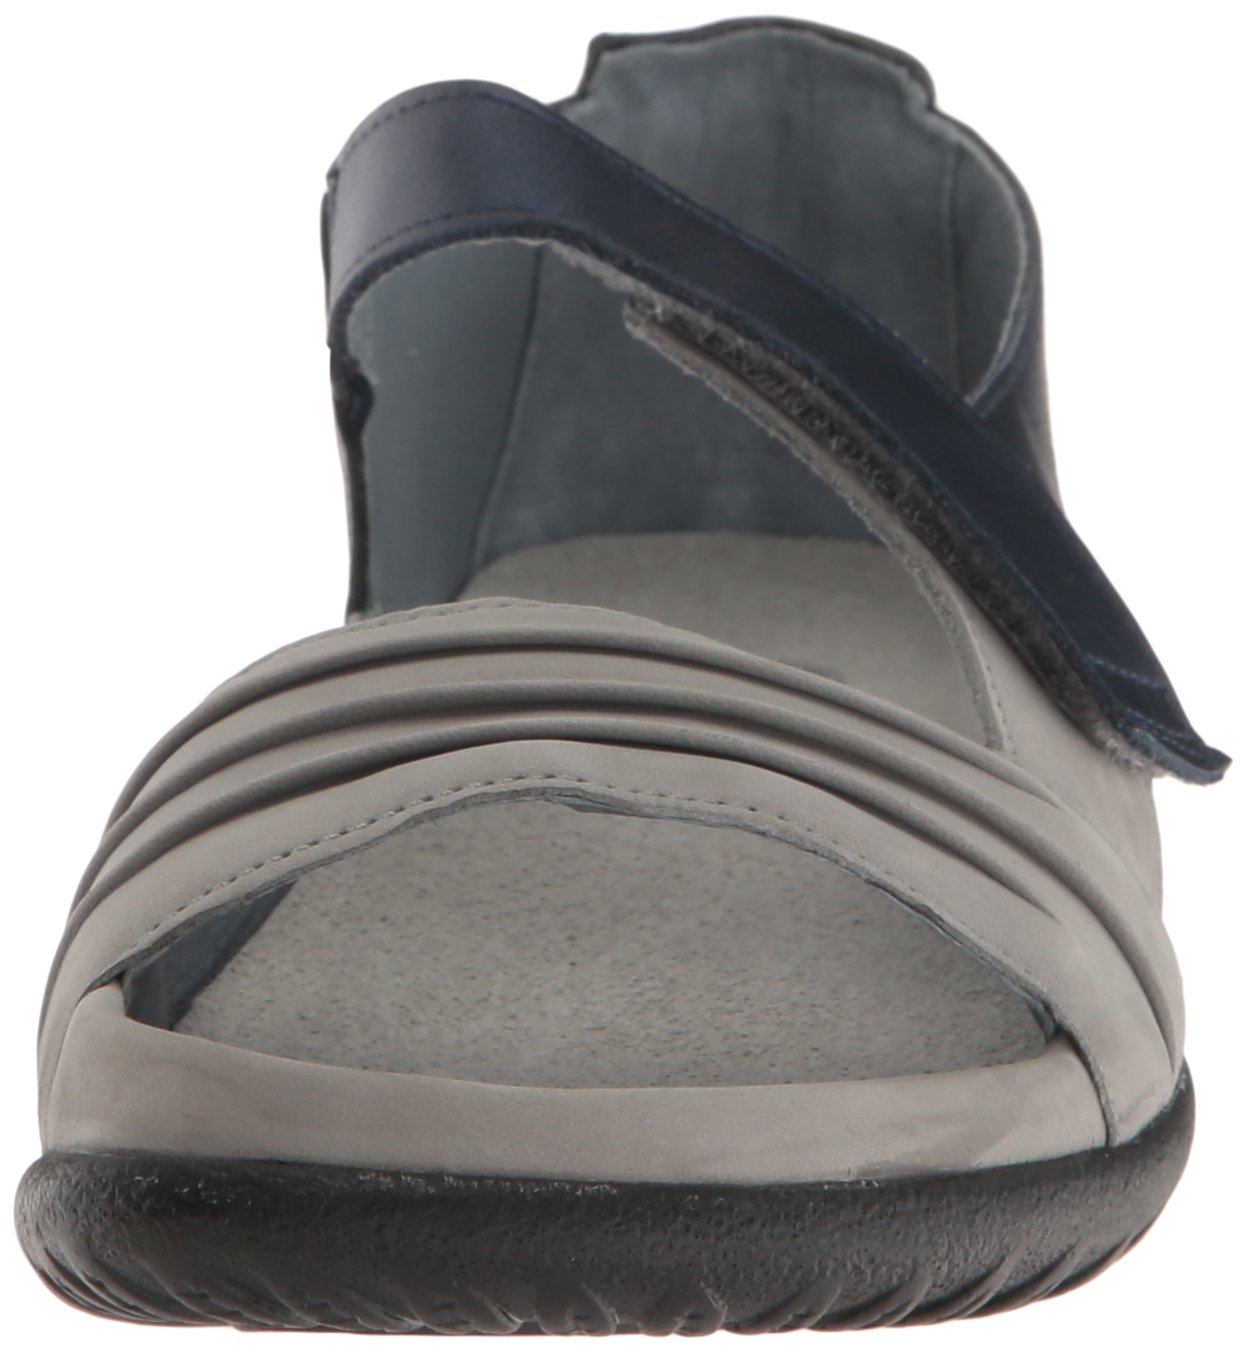 Naot Footwear Women's Papaki B01HT44EV0 39 Sea M EU|Light Gray Nubuck/Polar Sea 39 Leather c1e25a